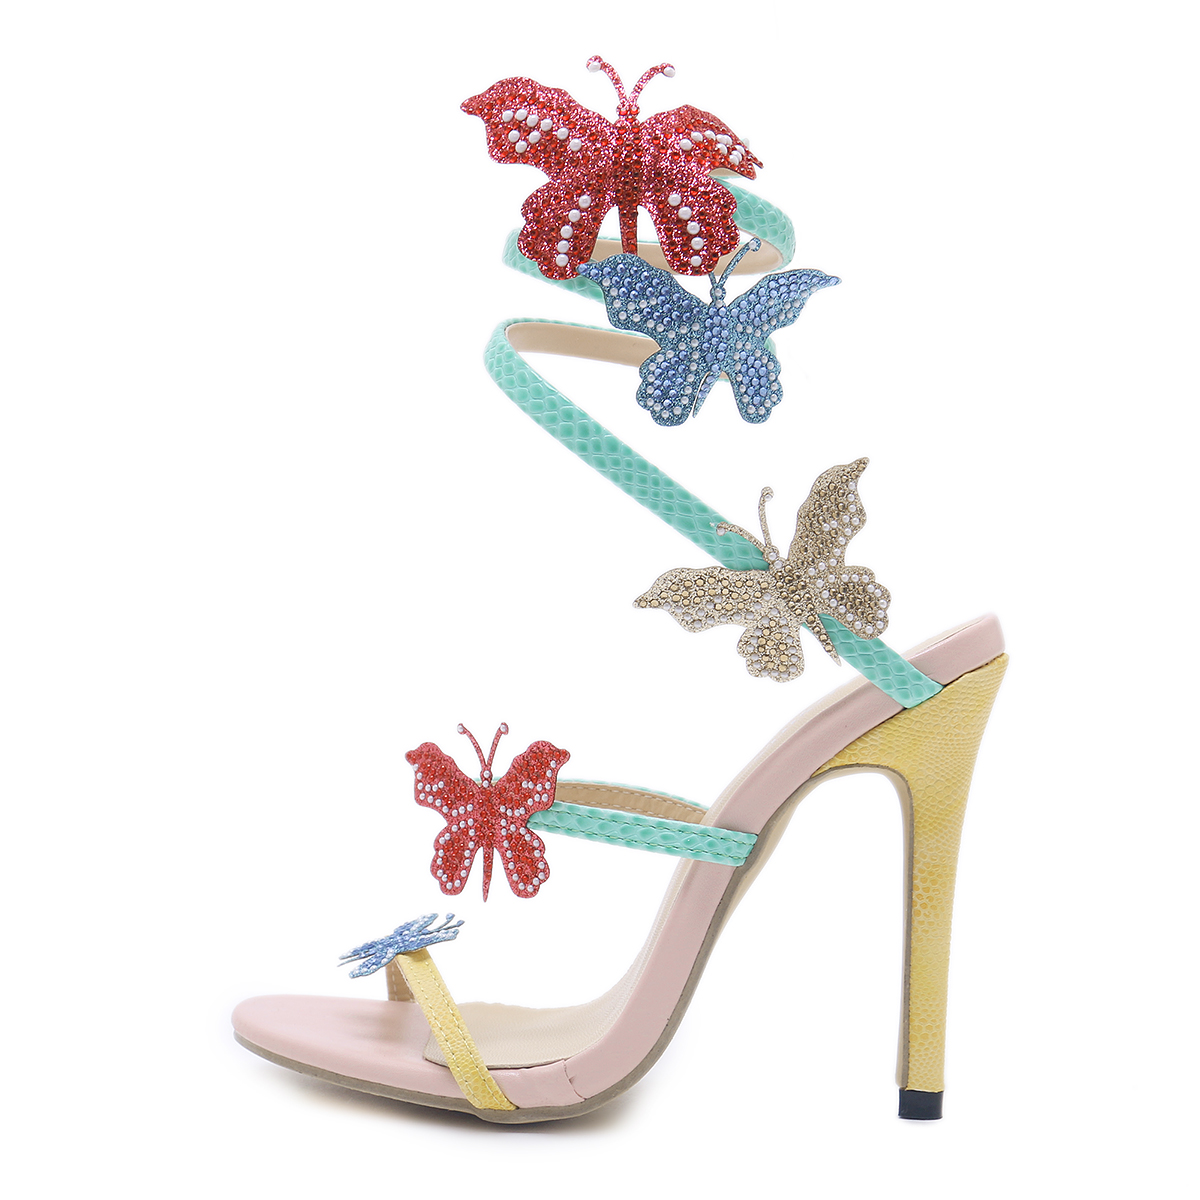 New Women Bride Shoes Pointed high-heeled 9cm Diamond Tassels Butterfly Wedding Shoes Lace Flowers Wristbands Summer San's main photo